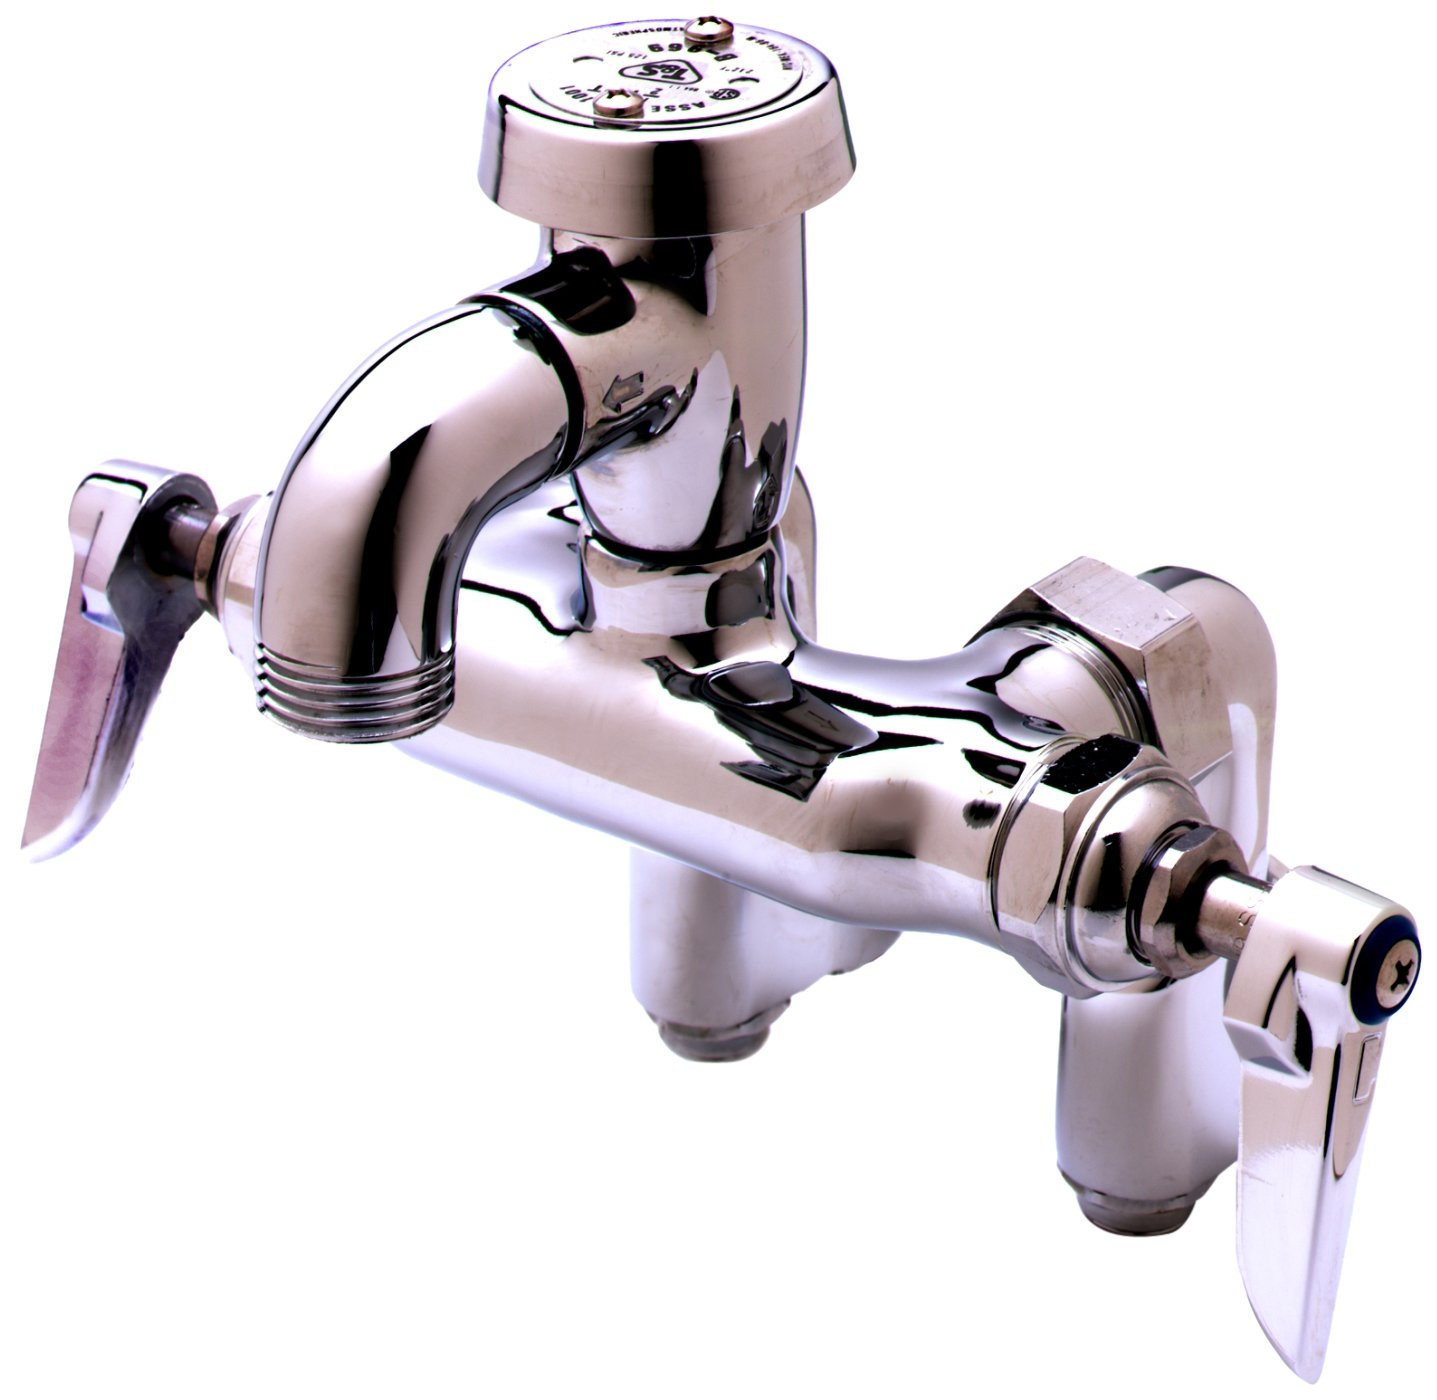 s brass graphics tamps faucets t of manual sink luxury b amp photos faucet sill elegant service i com